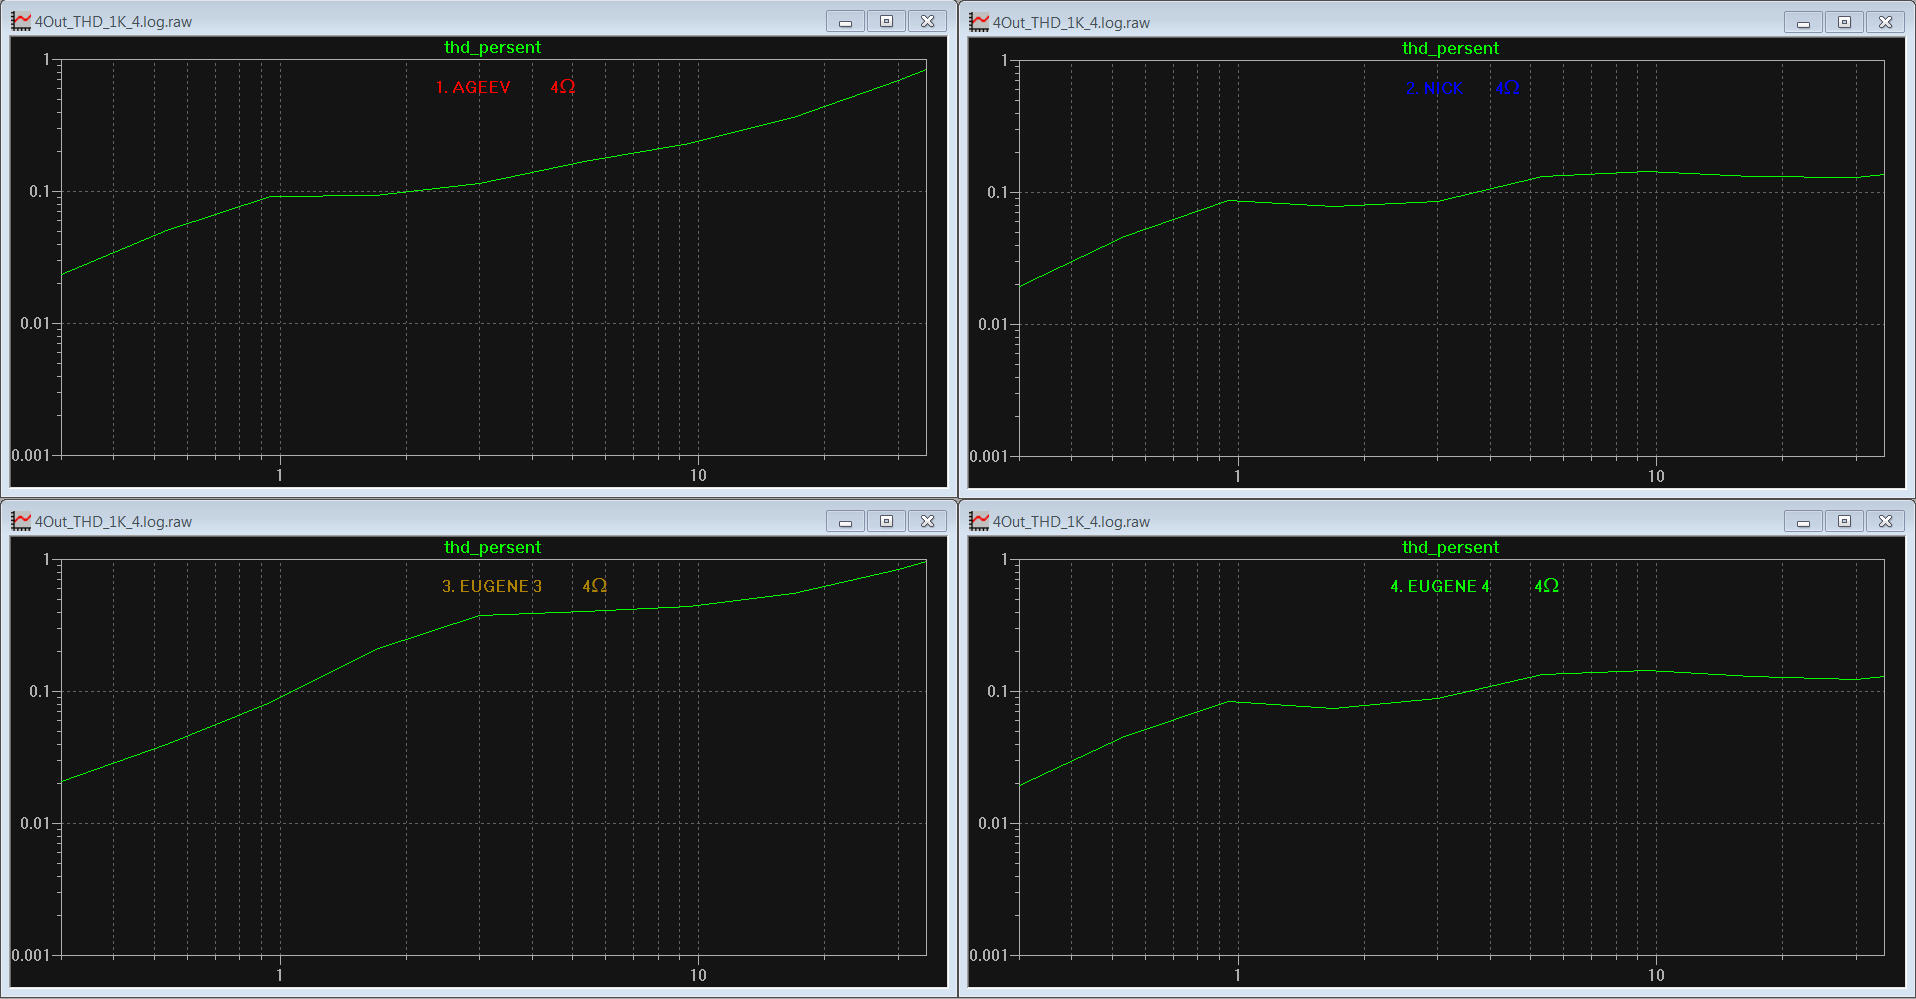 THD of all stages after optimization, 1KHz, 4 Ohm: